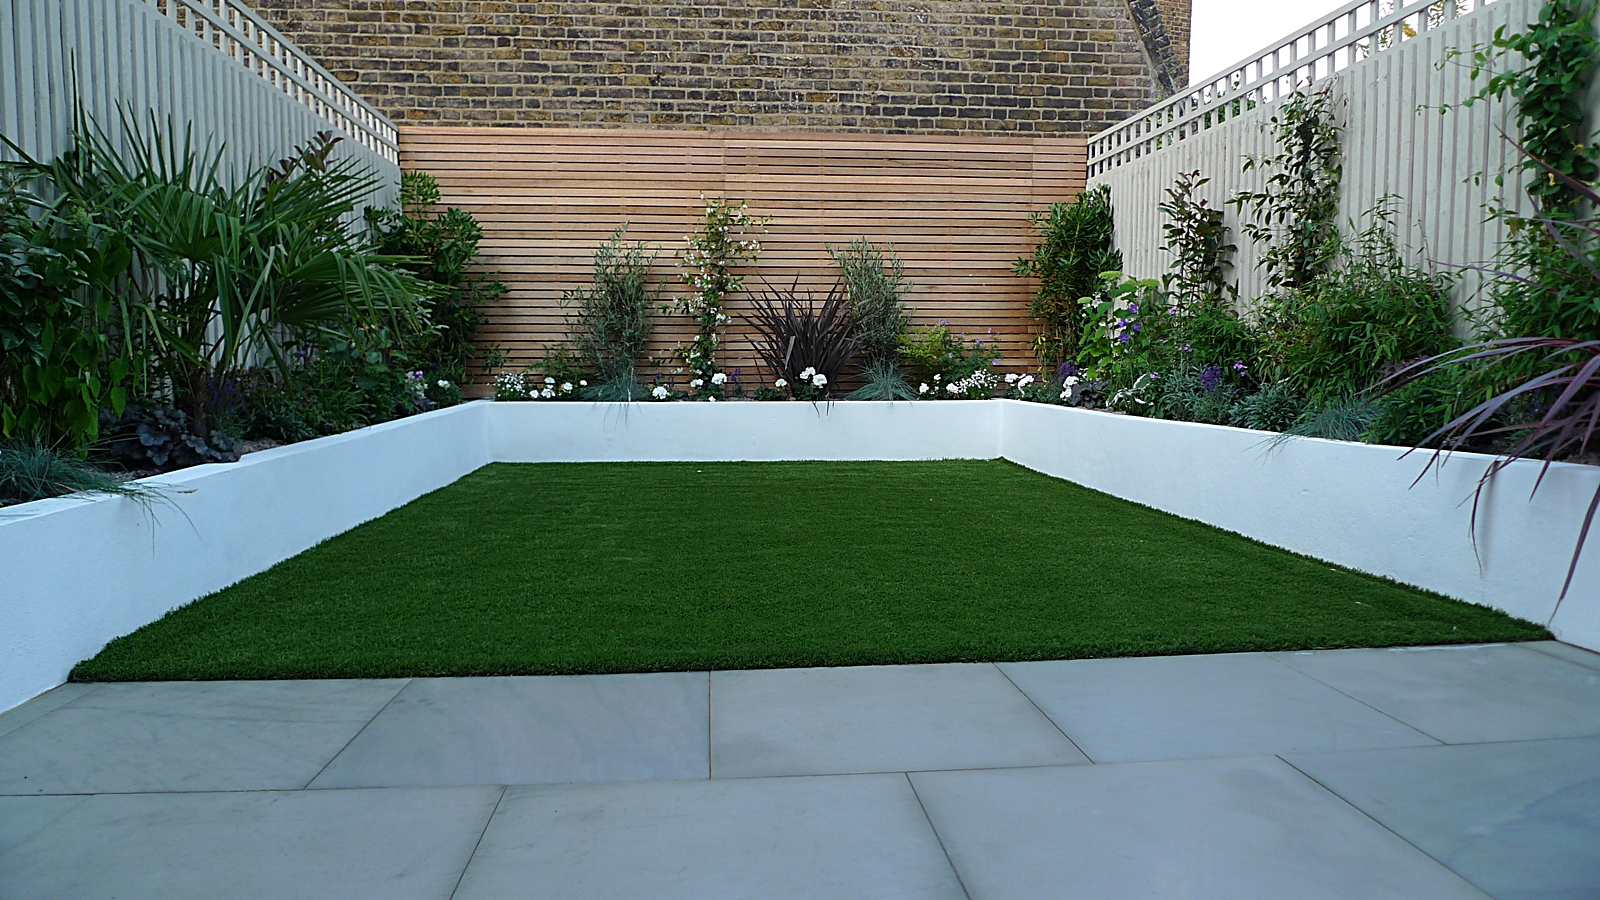 sawn grey sandstone paving raised rendered beds hardwood screen painted stone fence london small garden design (7)